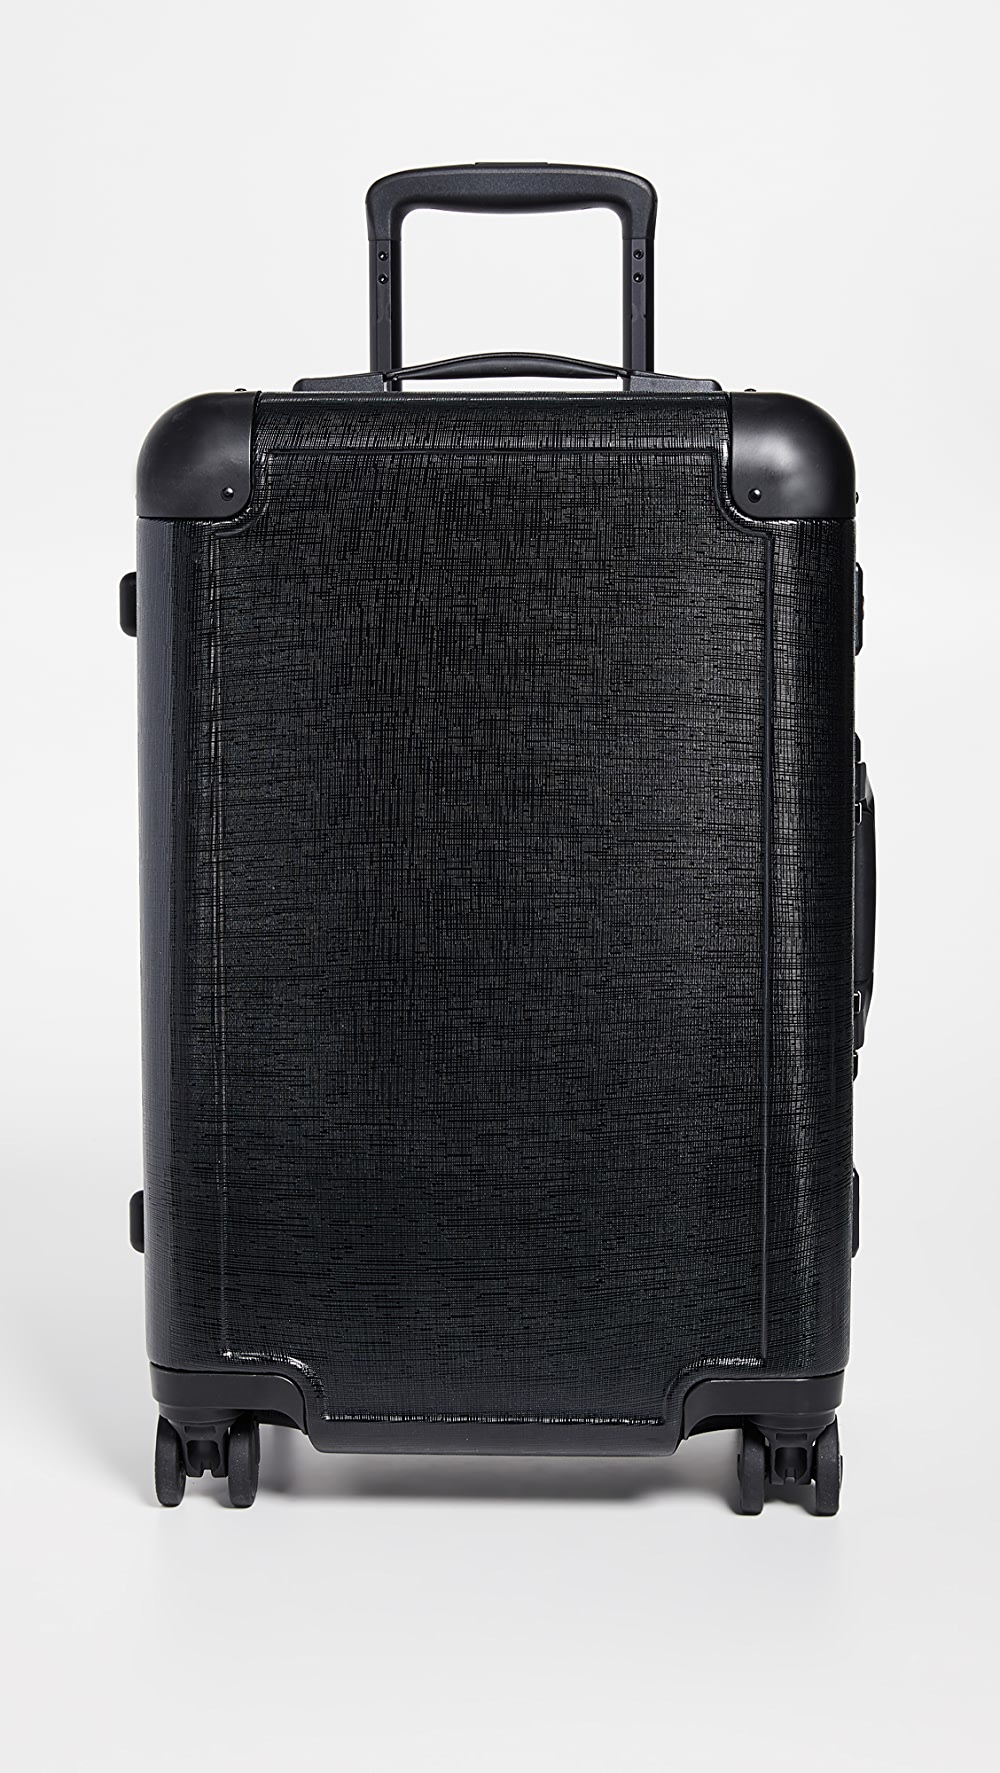 Humorous Calpak - X Jen Atkin Carry On Suitcase Driving A Roaring Trade